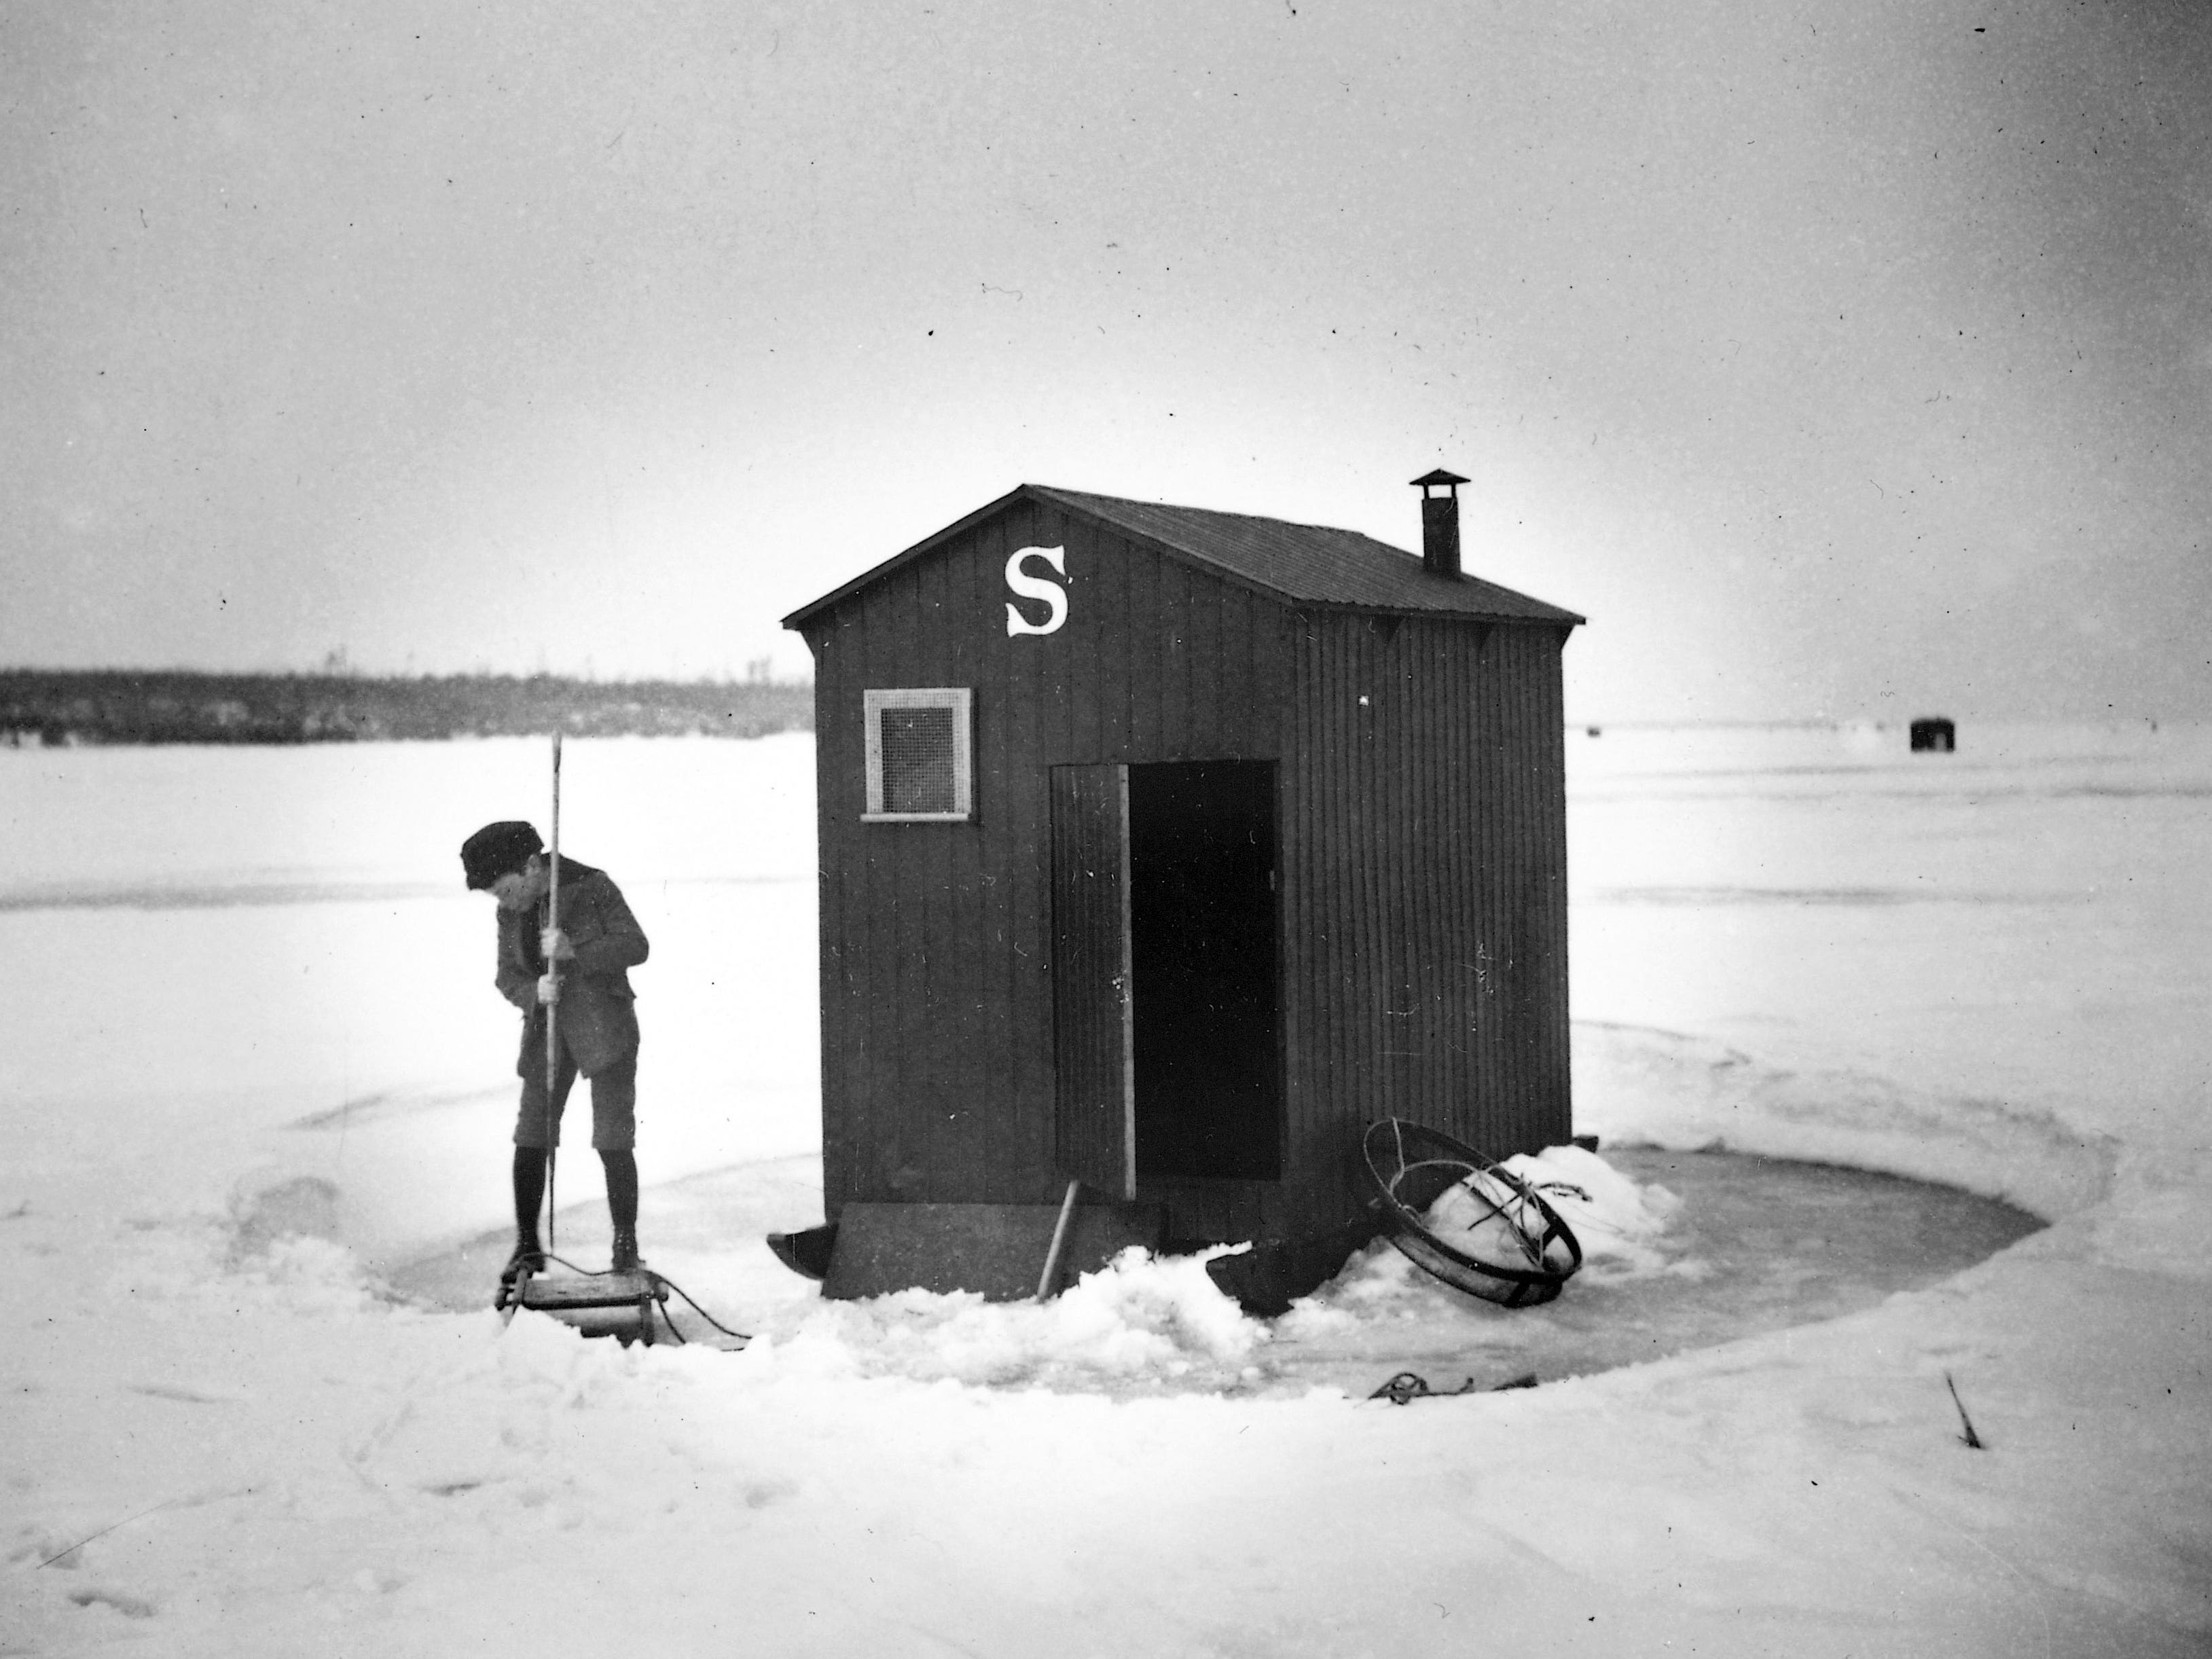 In 1898, a boy clears the ice around his family's ice shanty in preparation to fish. (Photo ID 24511)